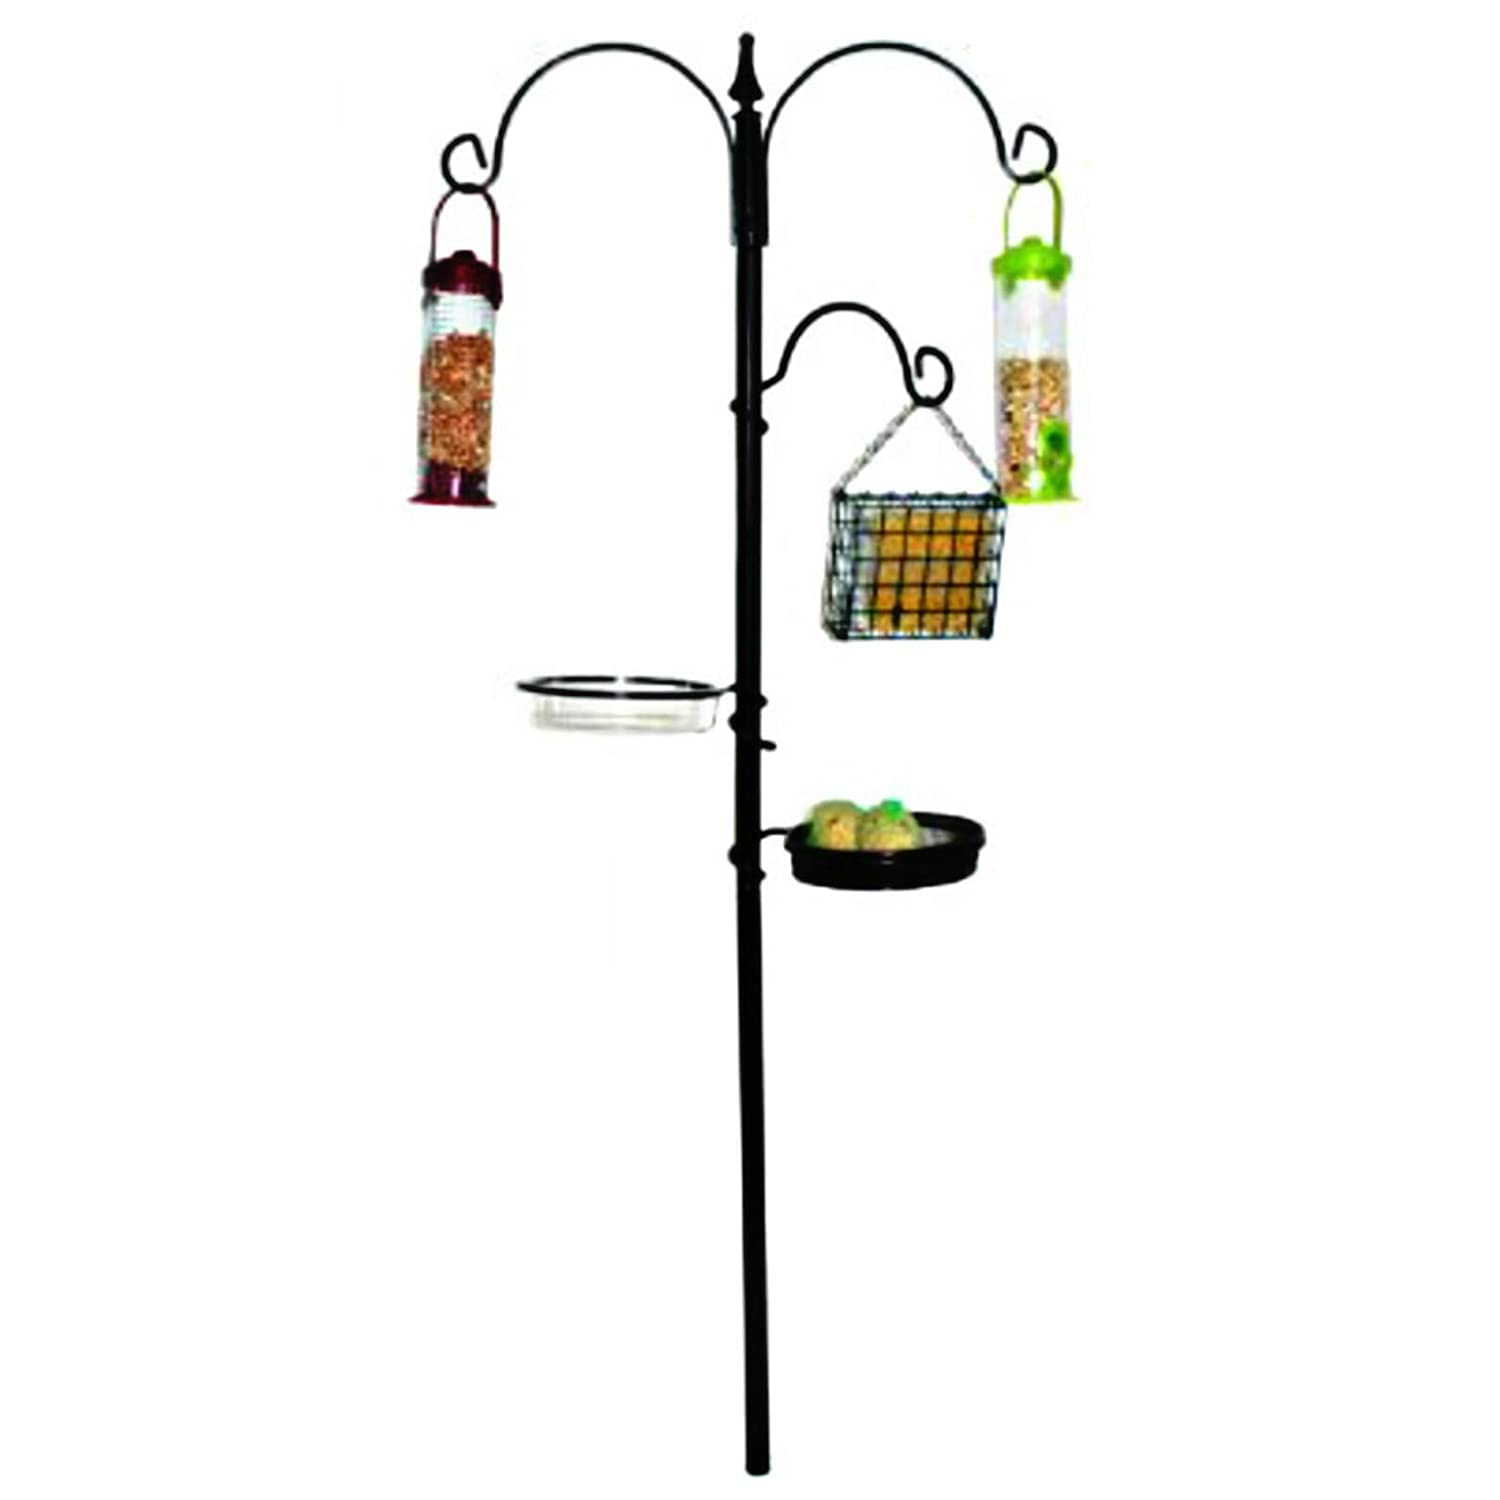 WILD BIRD FEEDING STATION WITH FEEDERS GARDEN HANGING WATER BATH TABLE SEED TRAY